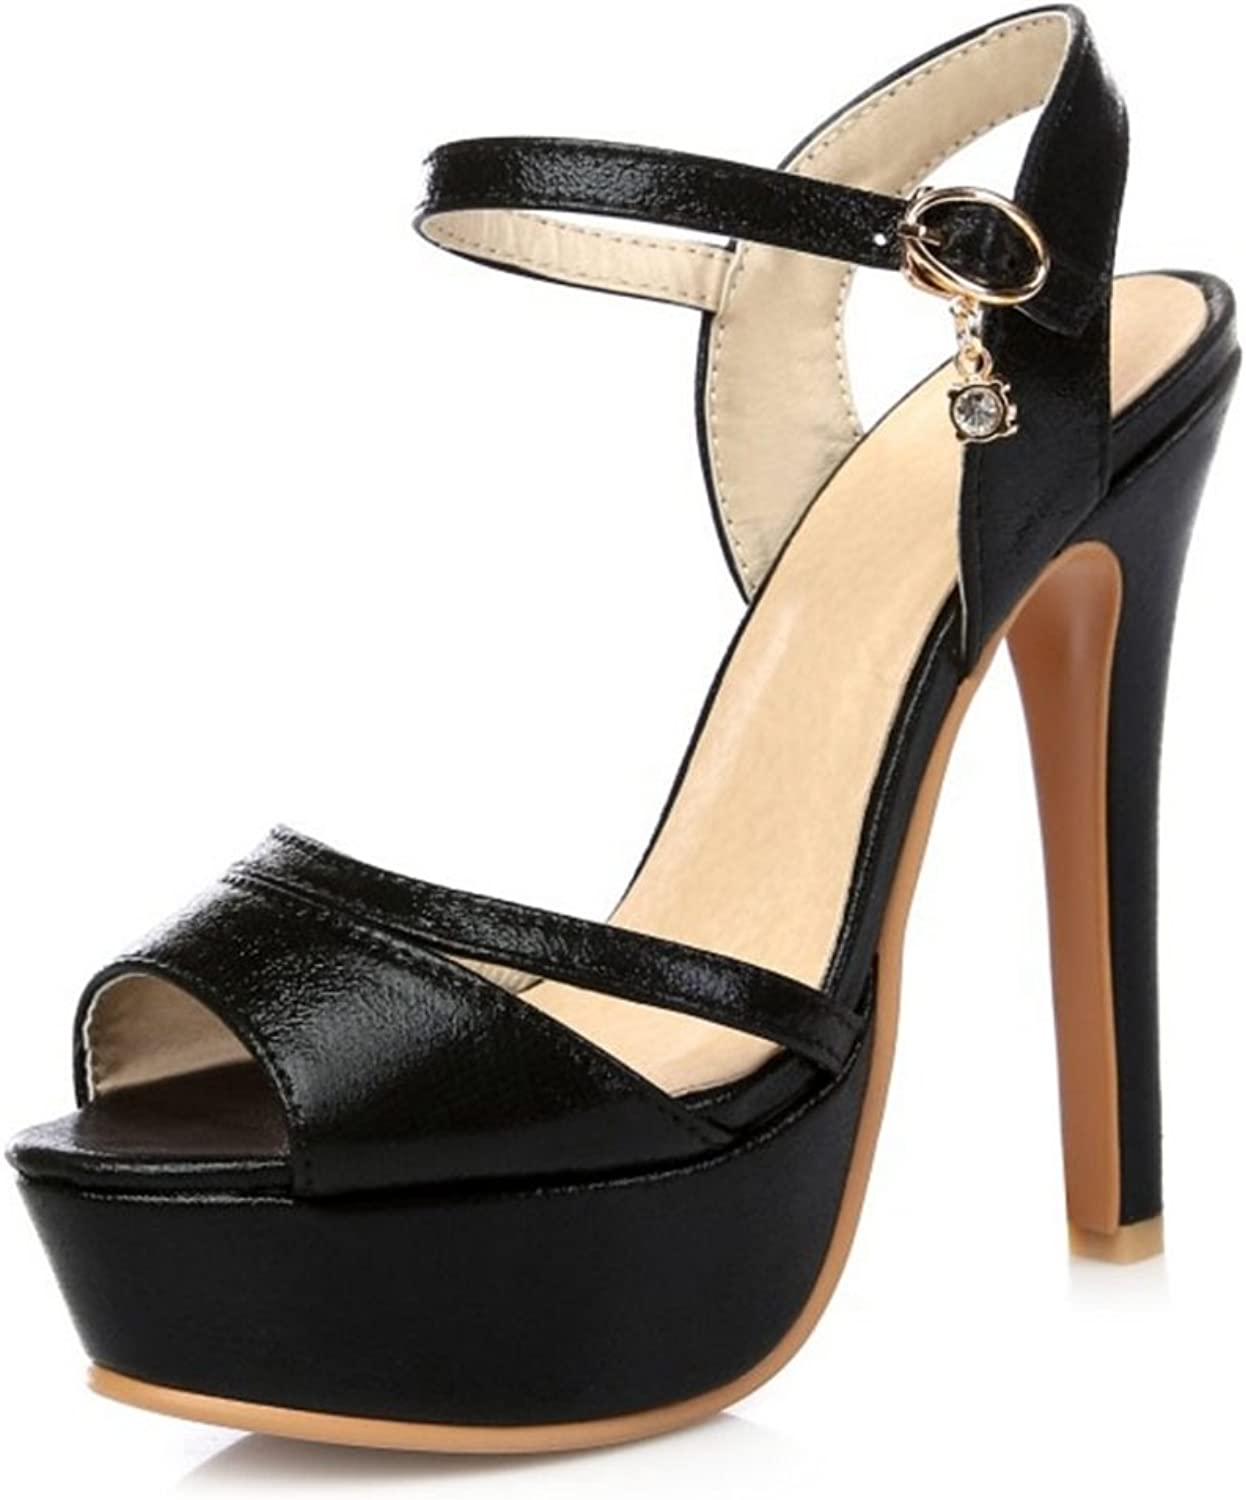 Smilice Women High Heel Gladiator Sandals Ankle Strap Peep Toe shoes Size 1-13 US